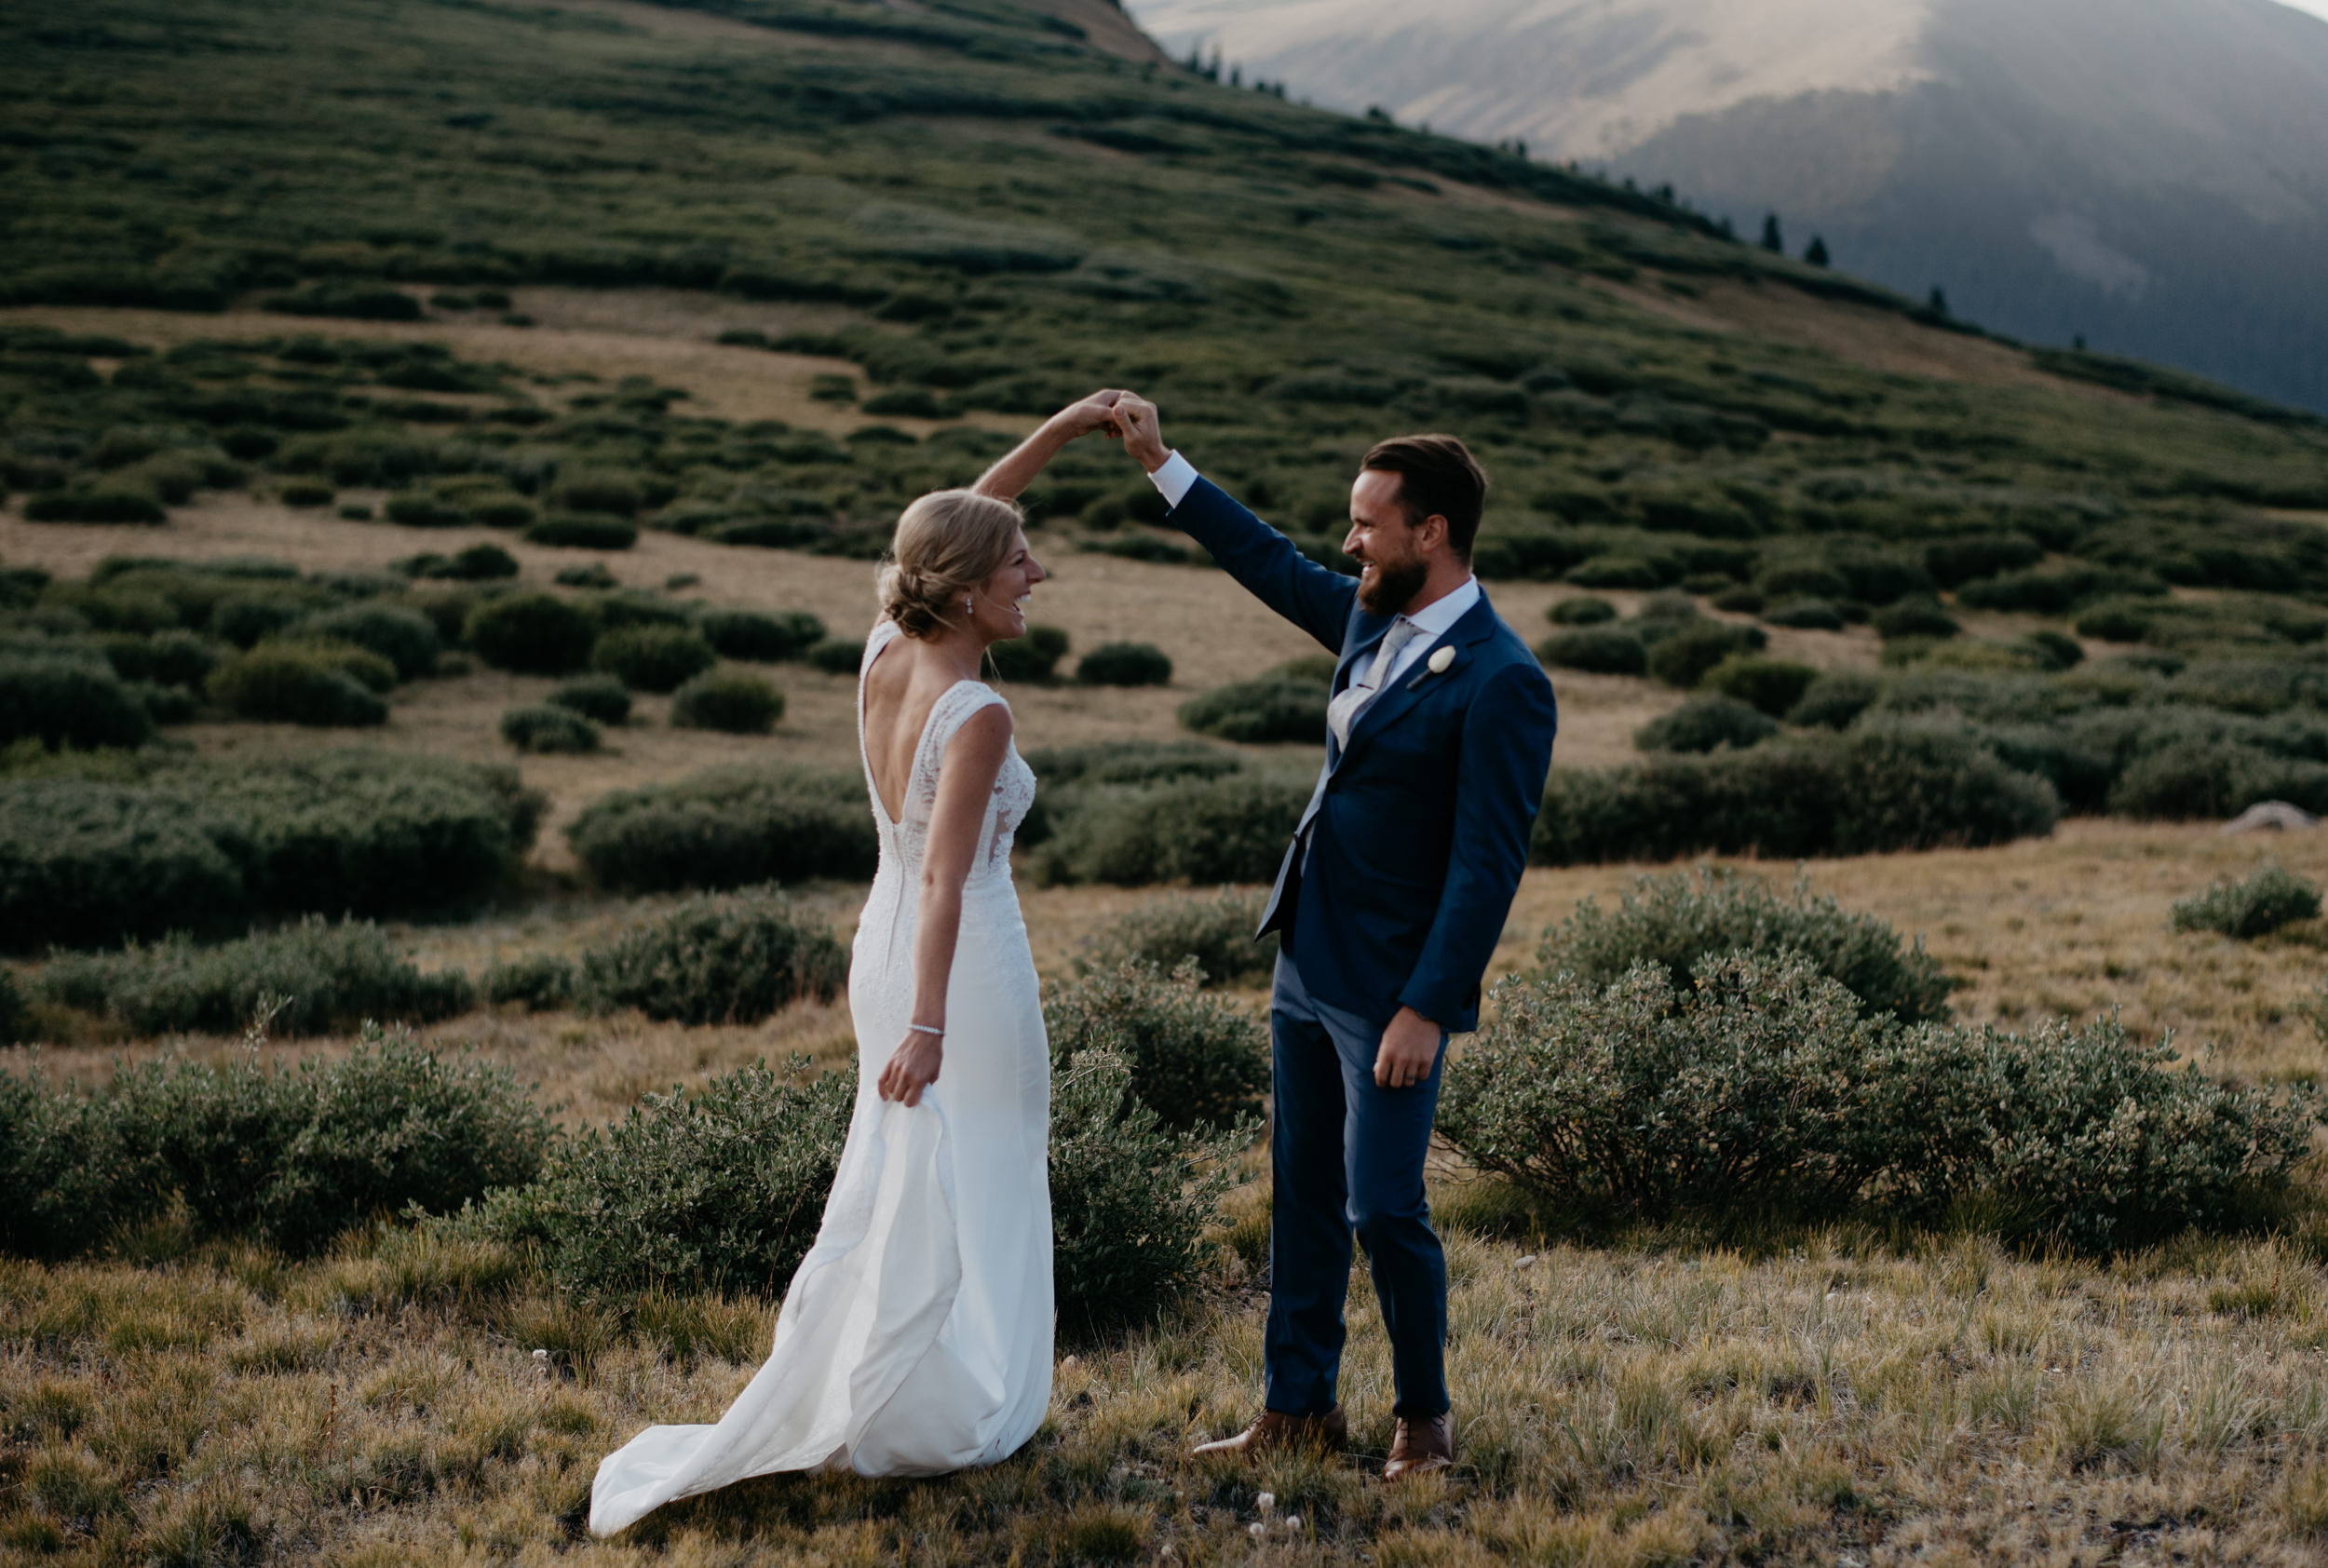 Groom spinning bride at a Georgetown, CO elopement.